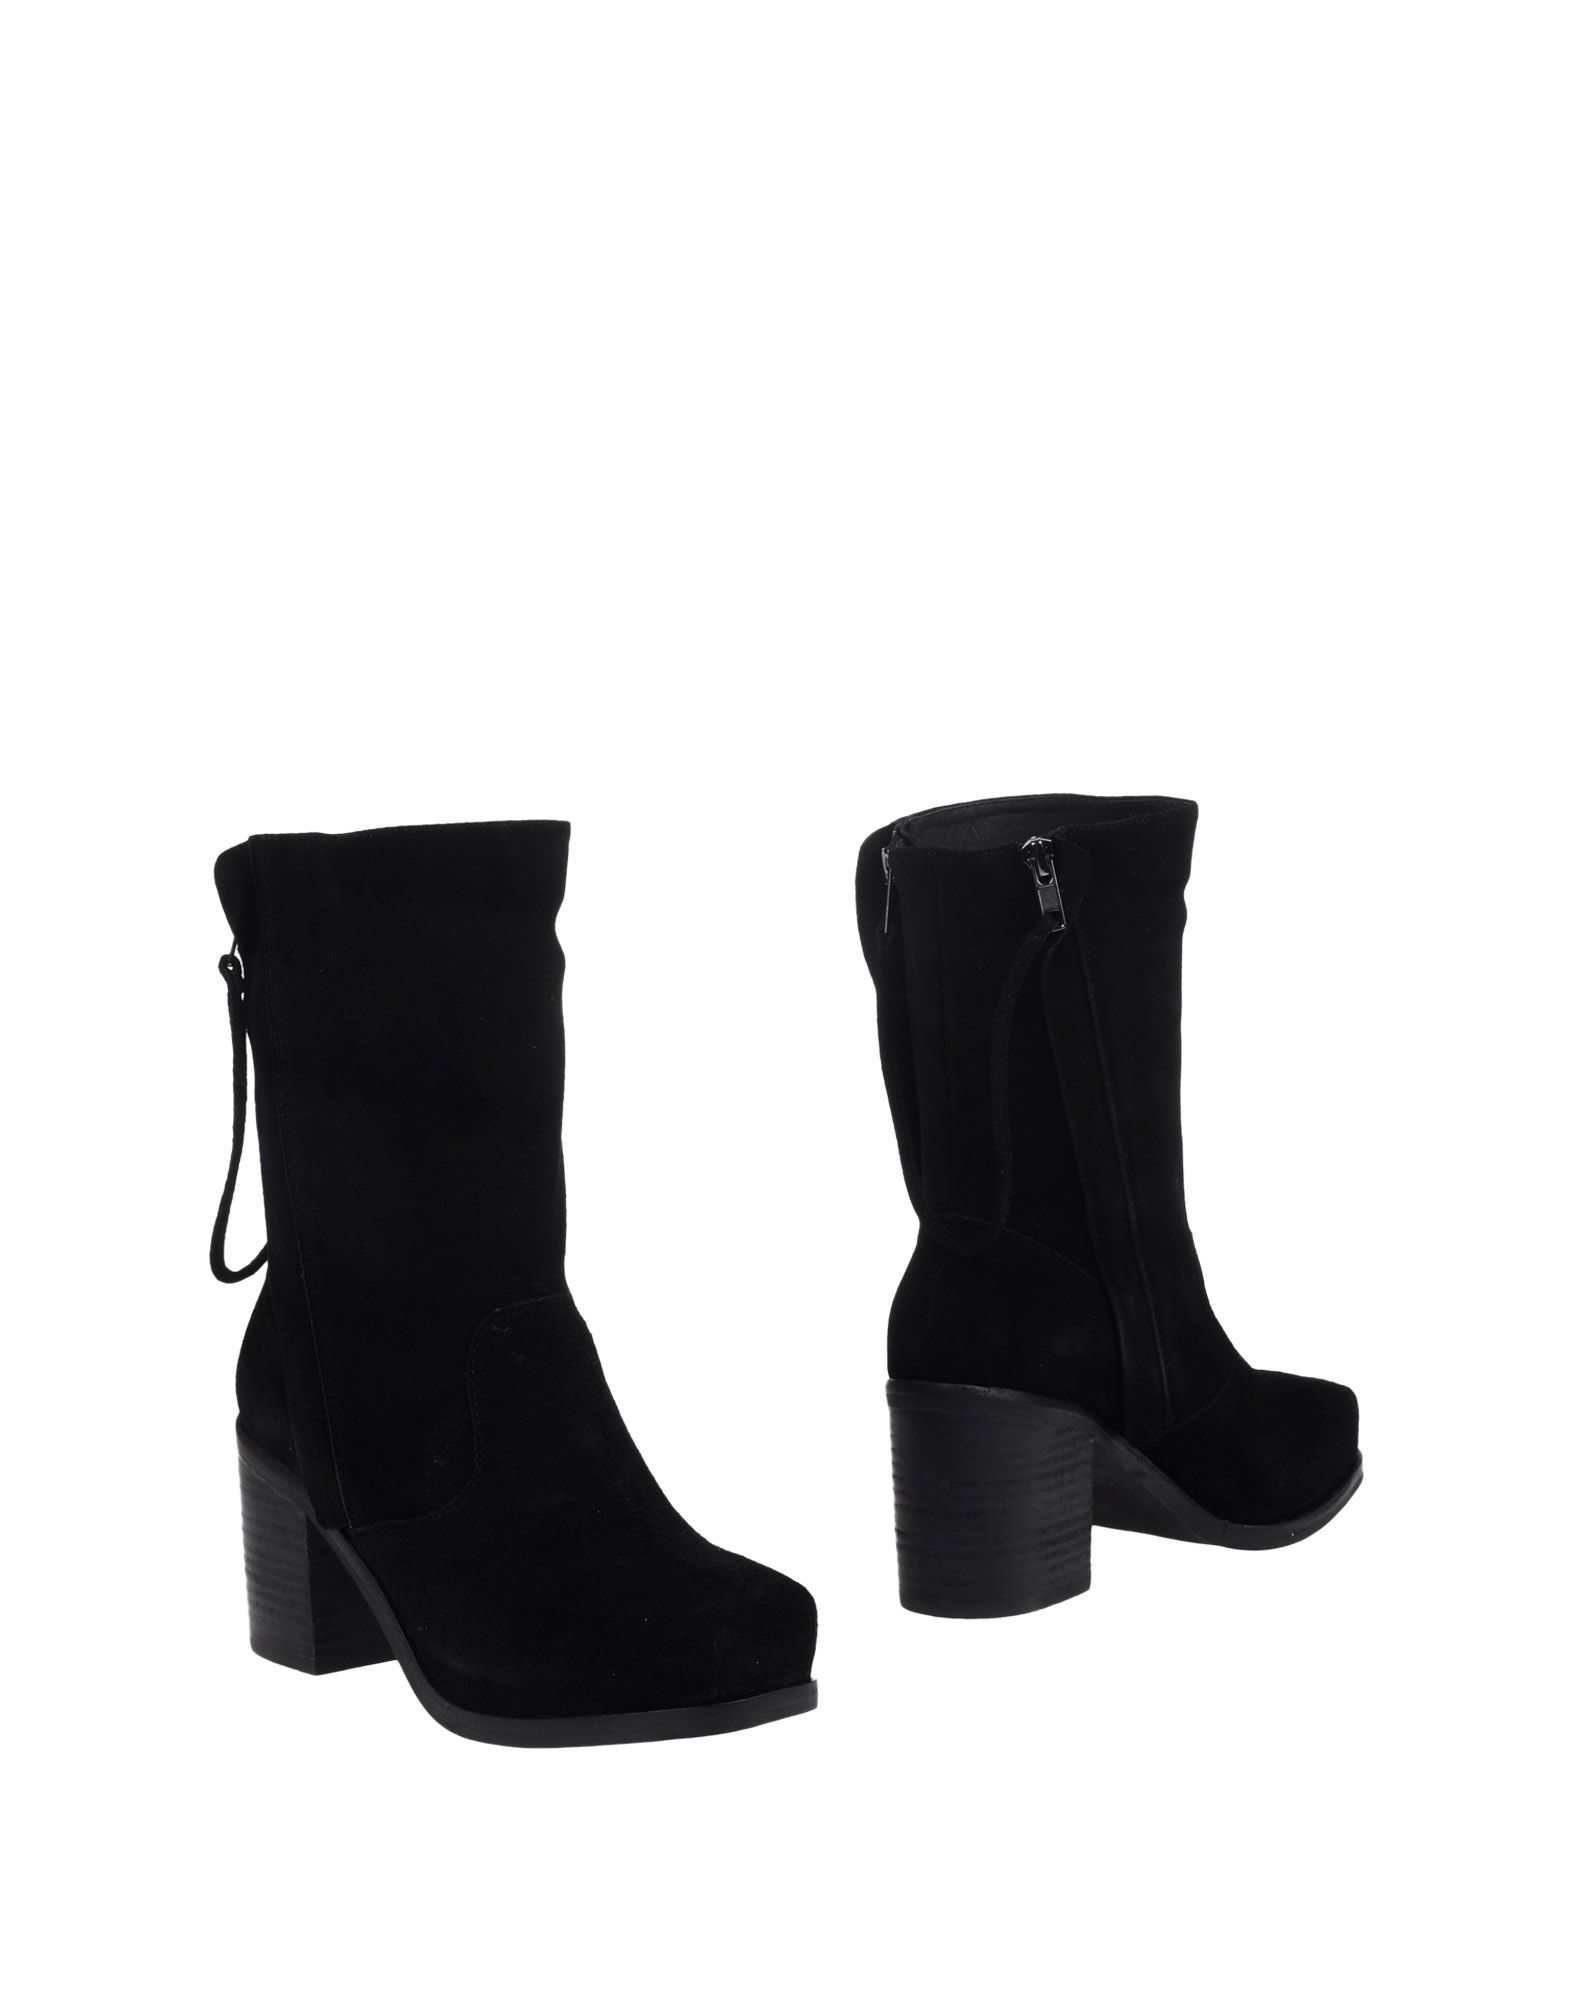 Bottine Intentionally_______. Femme - Bottines Intentionally_______. sur